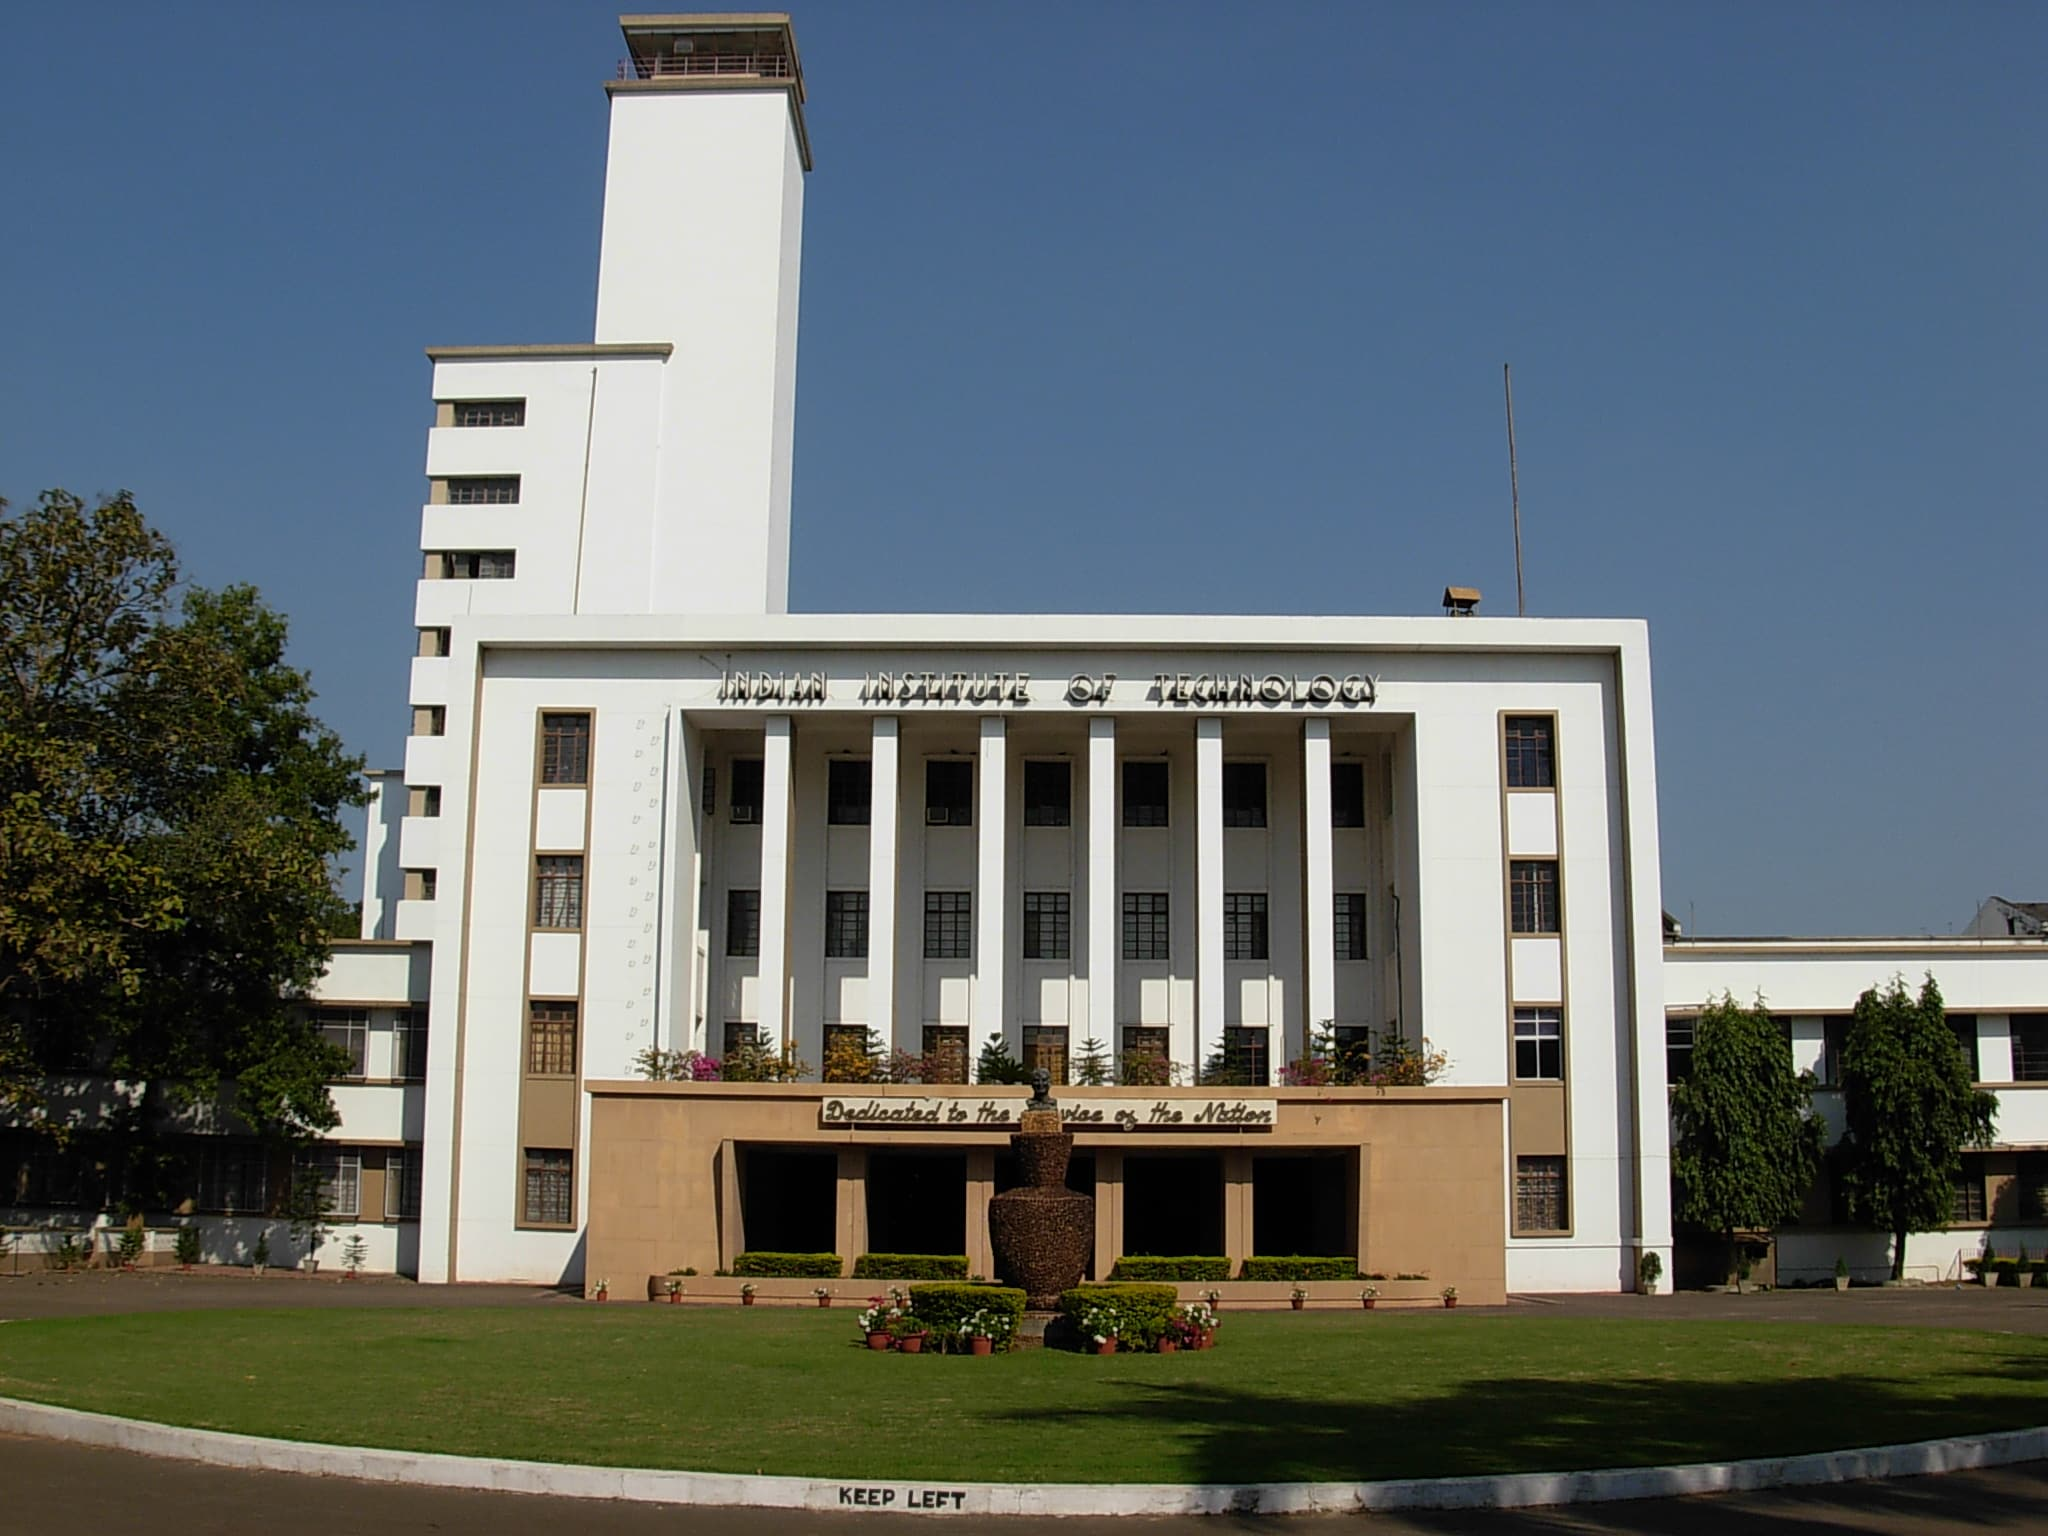 5: IIT Kharagpur: The Indian Institute of Technology Kharagpur was established in 1951. It is ranked fifth in the QS report. The students and alumni of IIT Kharagpur are referred to as KGPians. (Image: Facebook/IIT Kharagpur)